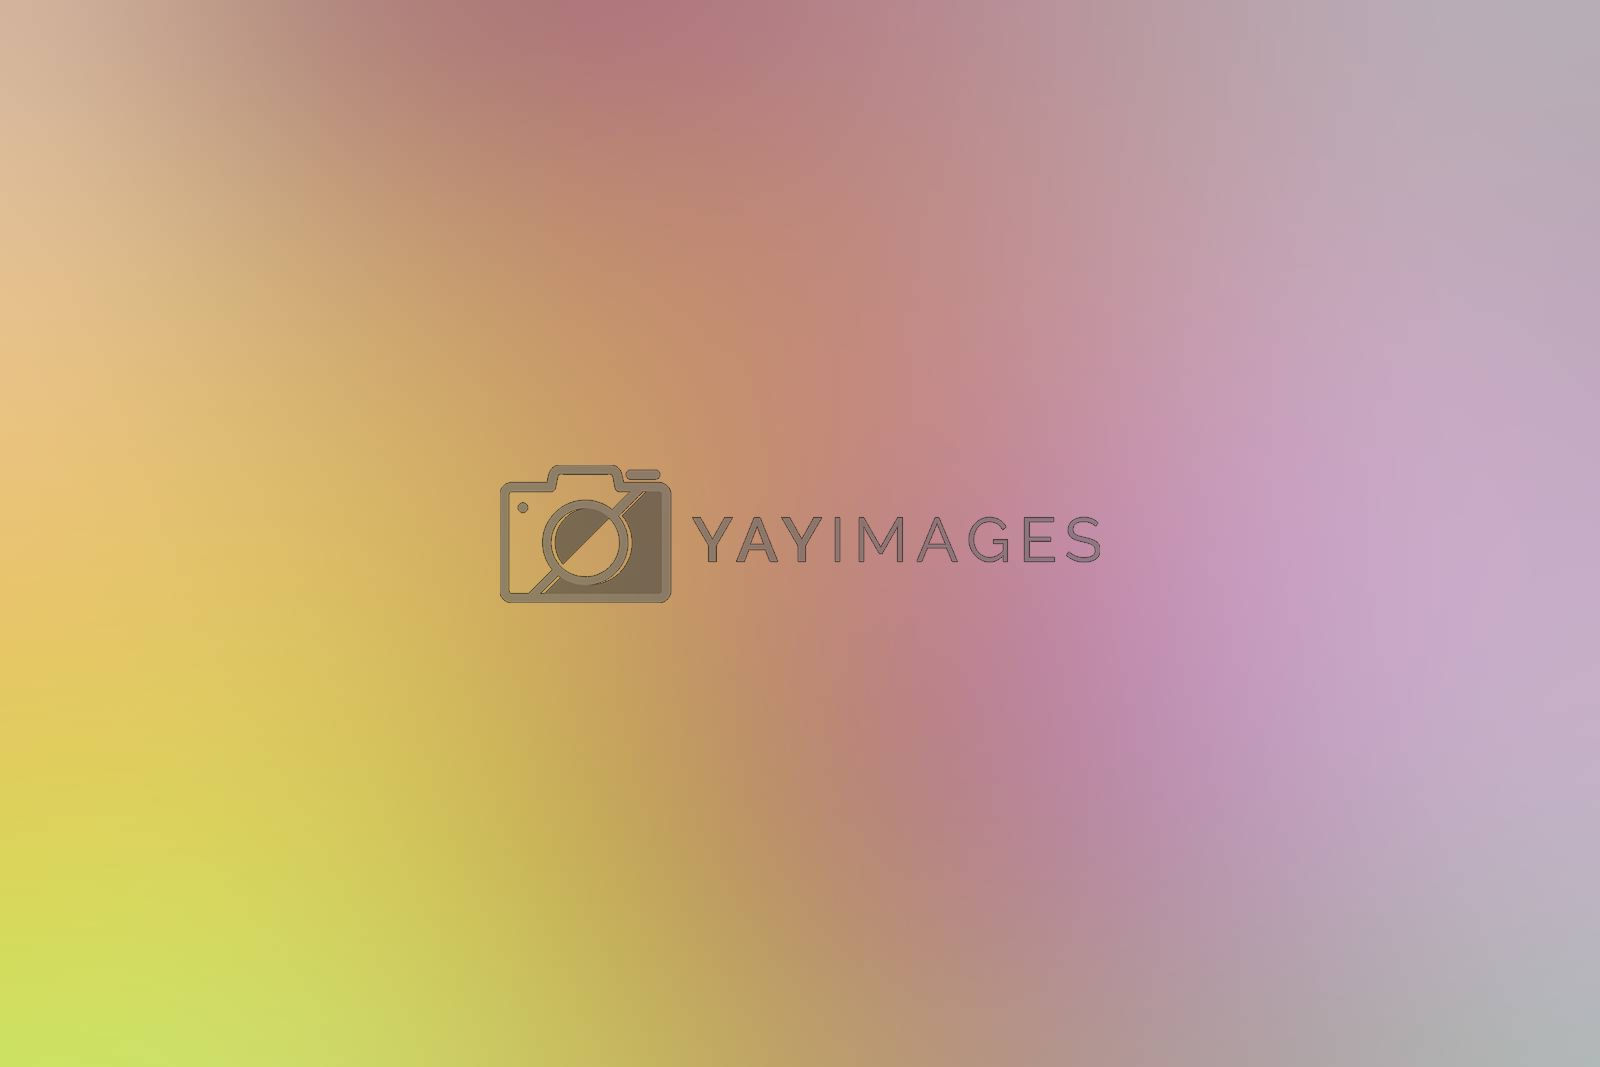 Royalty free image of blurred gradient yellow pink hue colorful pastel soft background illustration for cosmetics banner advertising background by cgdeaw